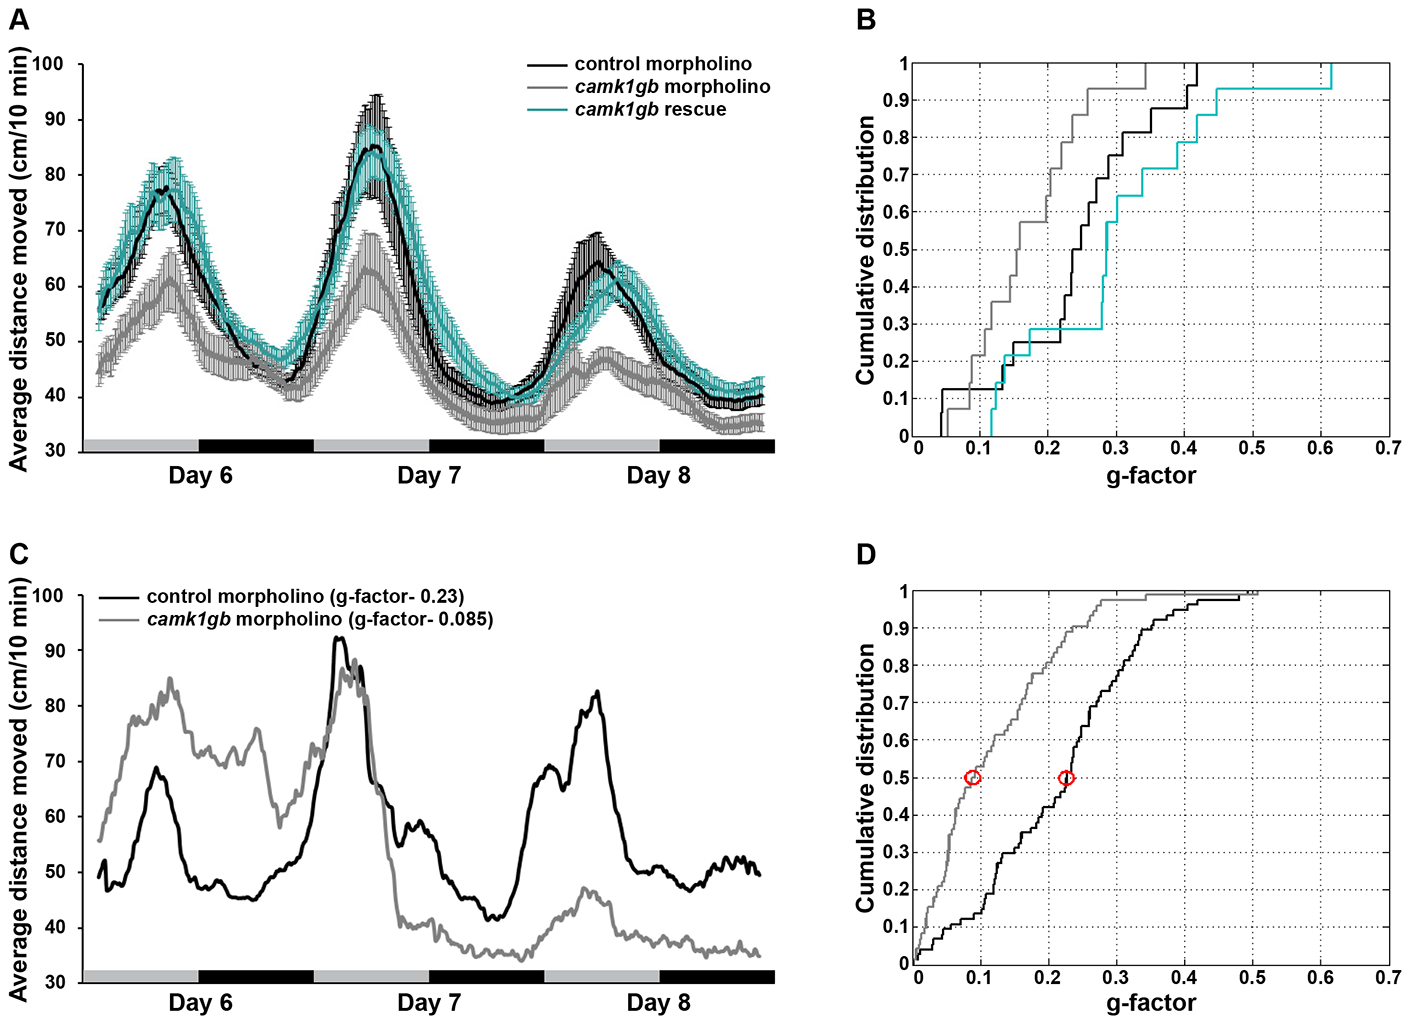 The effect of <i>camk1gb</i> knockdown on larval locomotor activity rhythms.